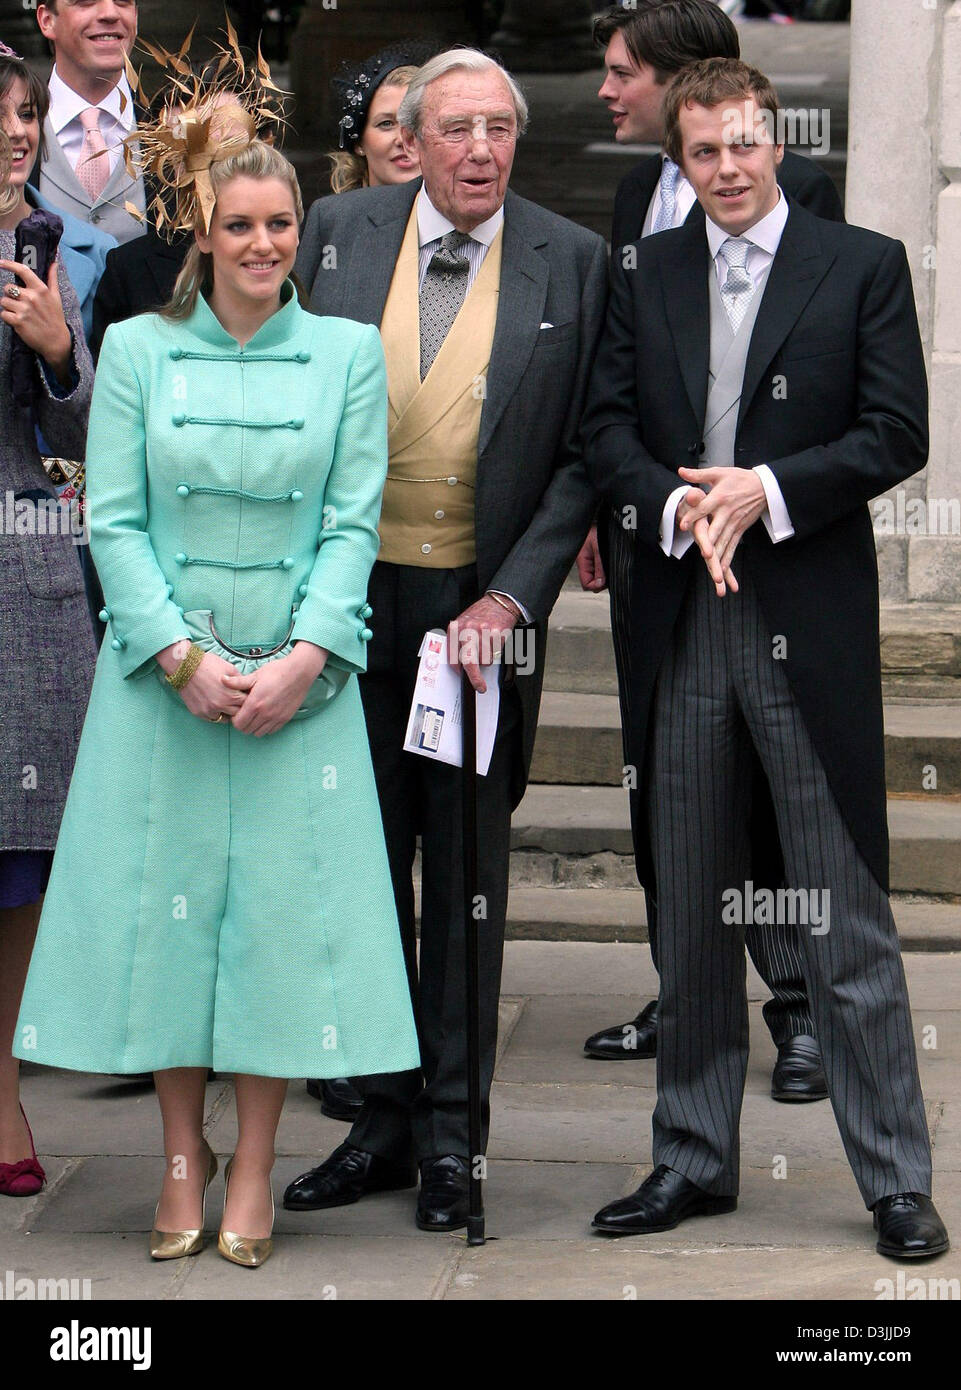 Prince Charles C R Stock Photos & Prince Charles C R Stock Images ...